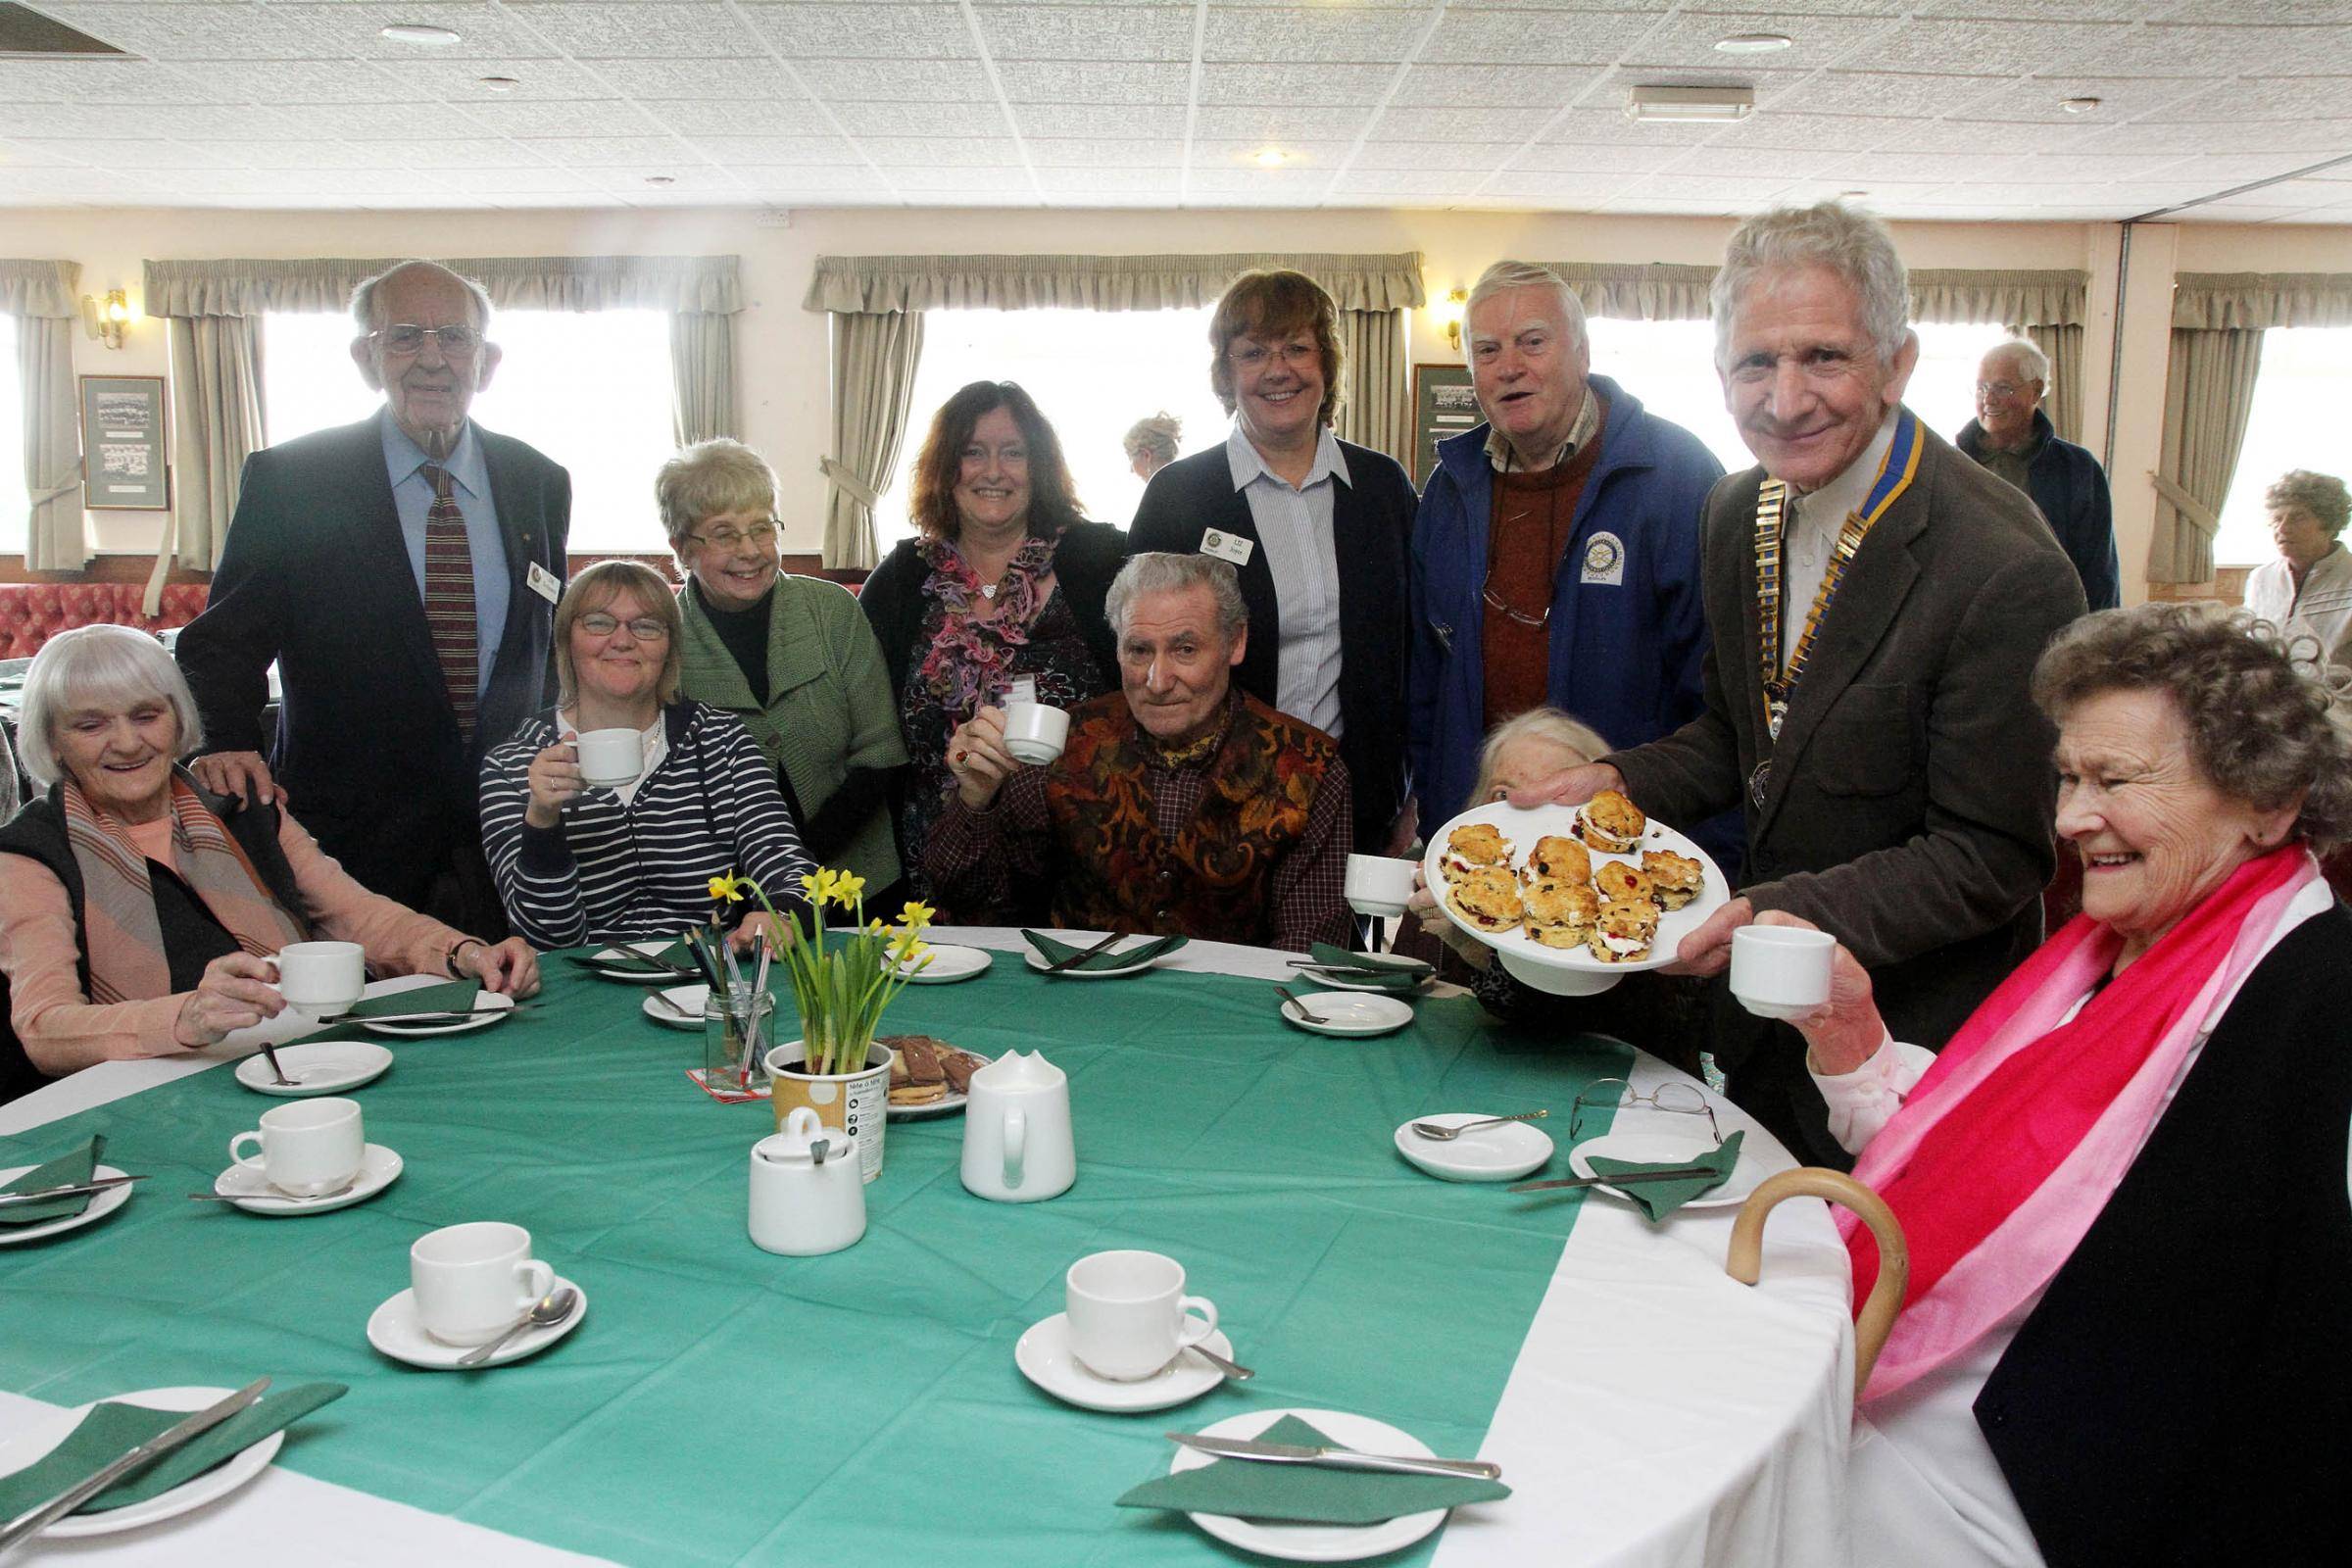 Keighley Rotary president, Alan Hickman (back, right) joins carers and helpers at the afternoon tea event held at Keighley Rugby Union Club